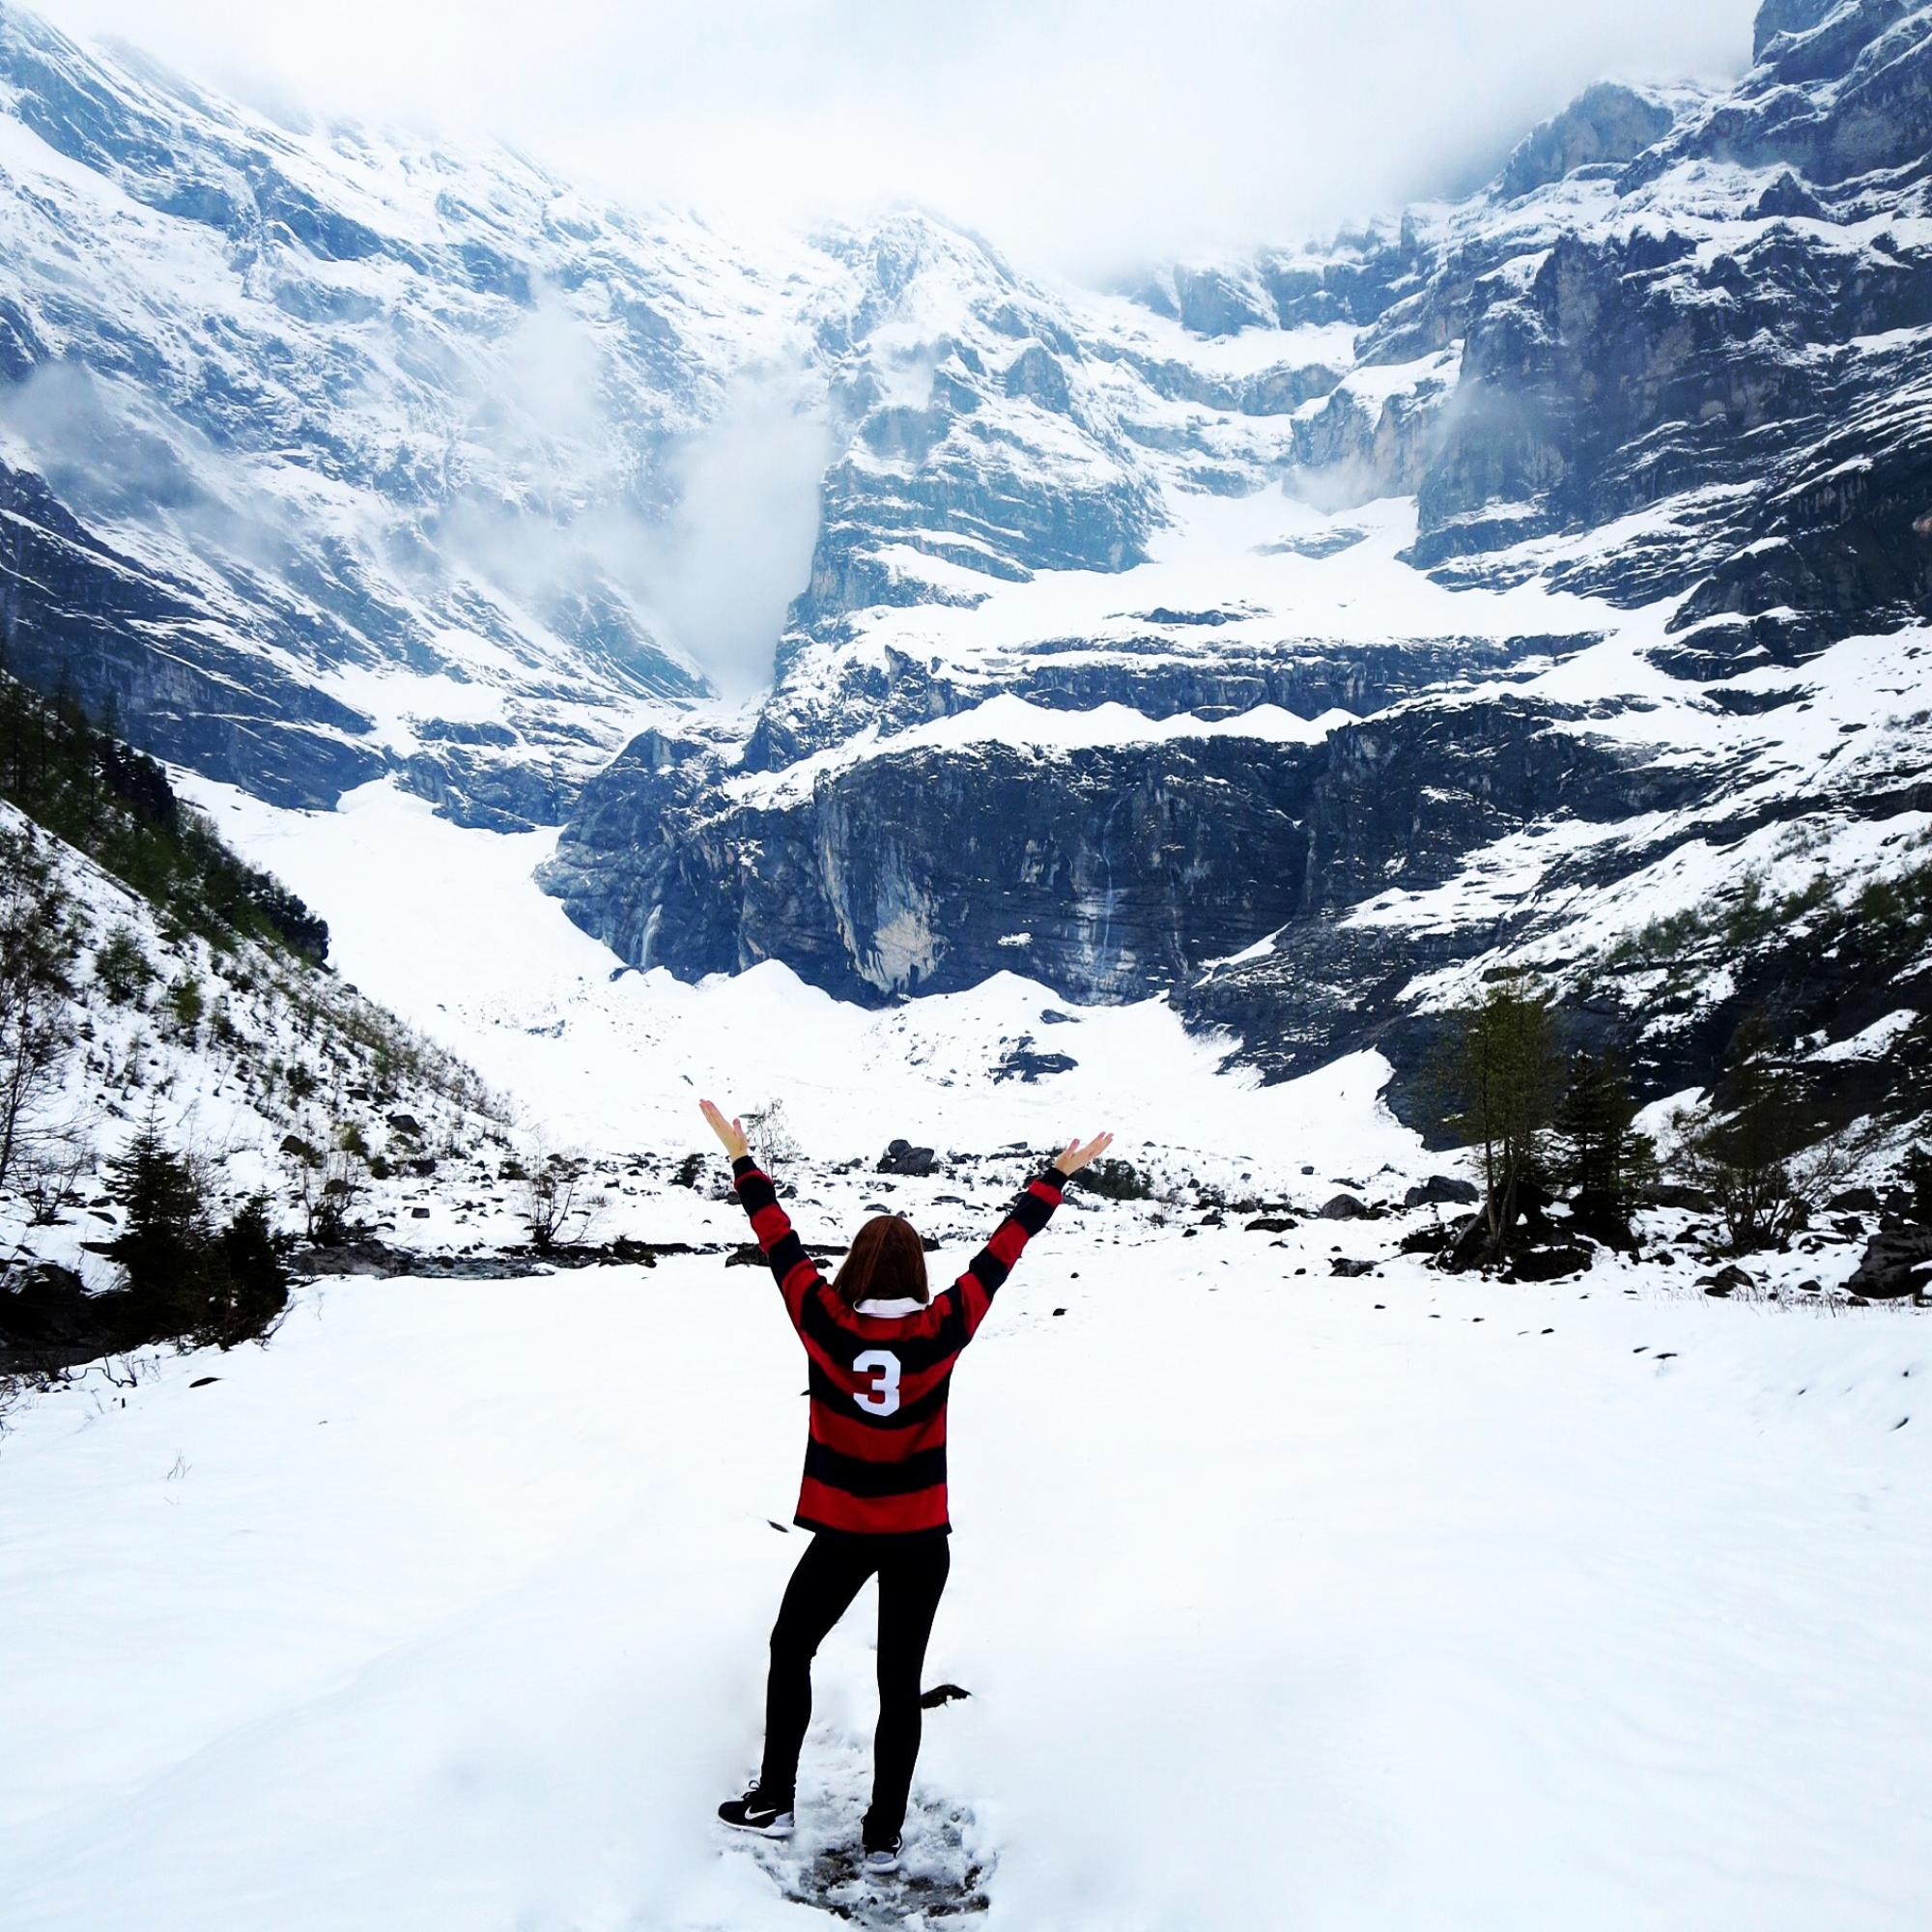 Allison Arendt, a student in the School of Dance, shows UA colors during a visit to Switzerland.